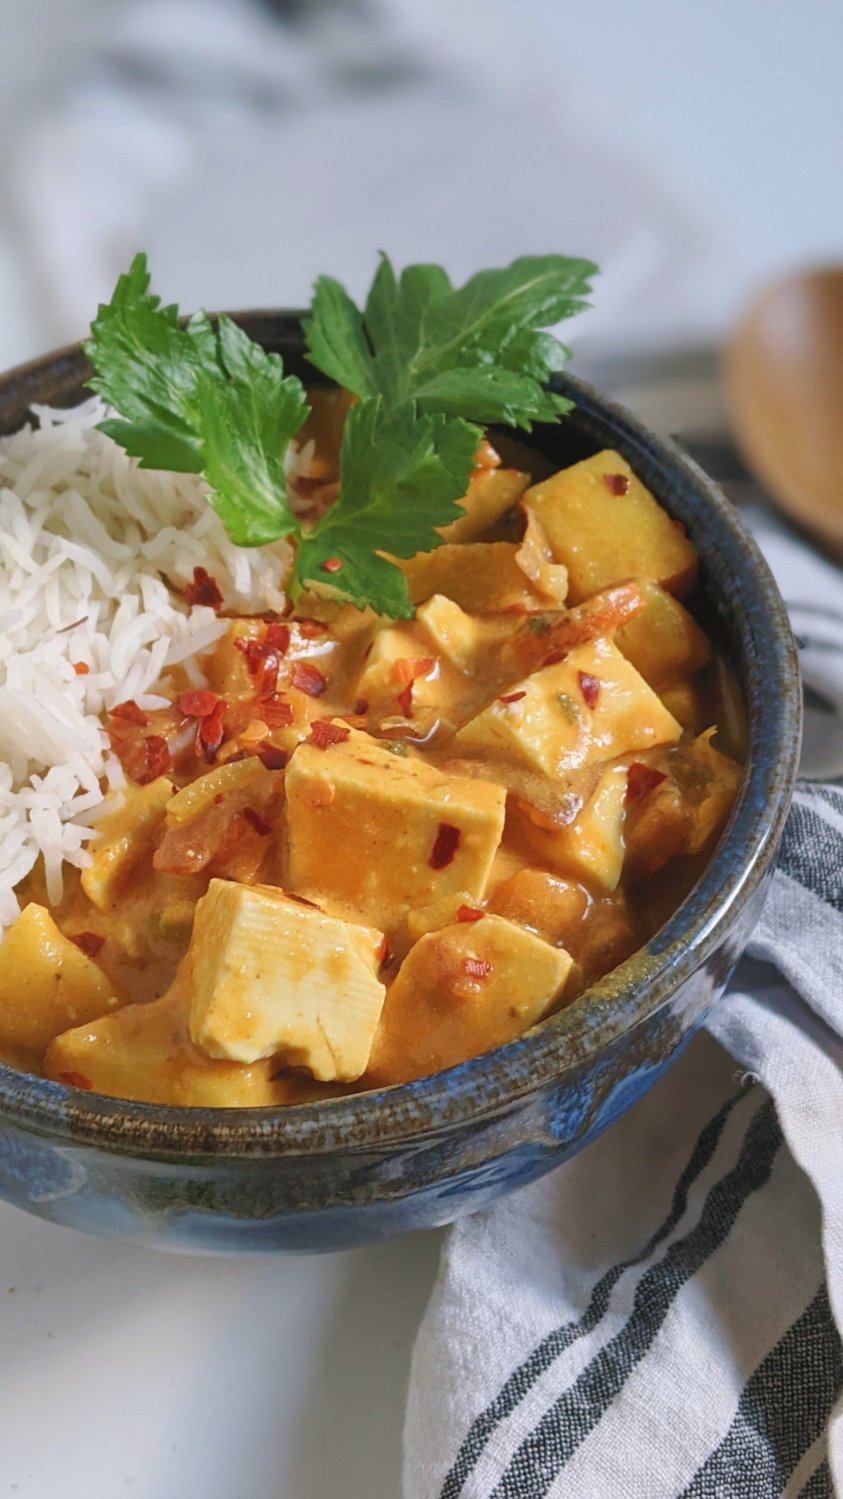 healthy tofu curry recipe vegan gluten free dairy free coconut milk curry paste with vegetables cilantro pineapple carrots pepper onion